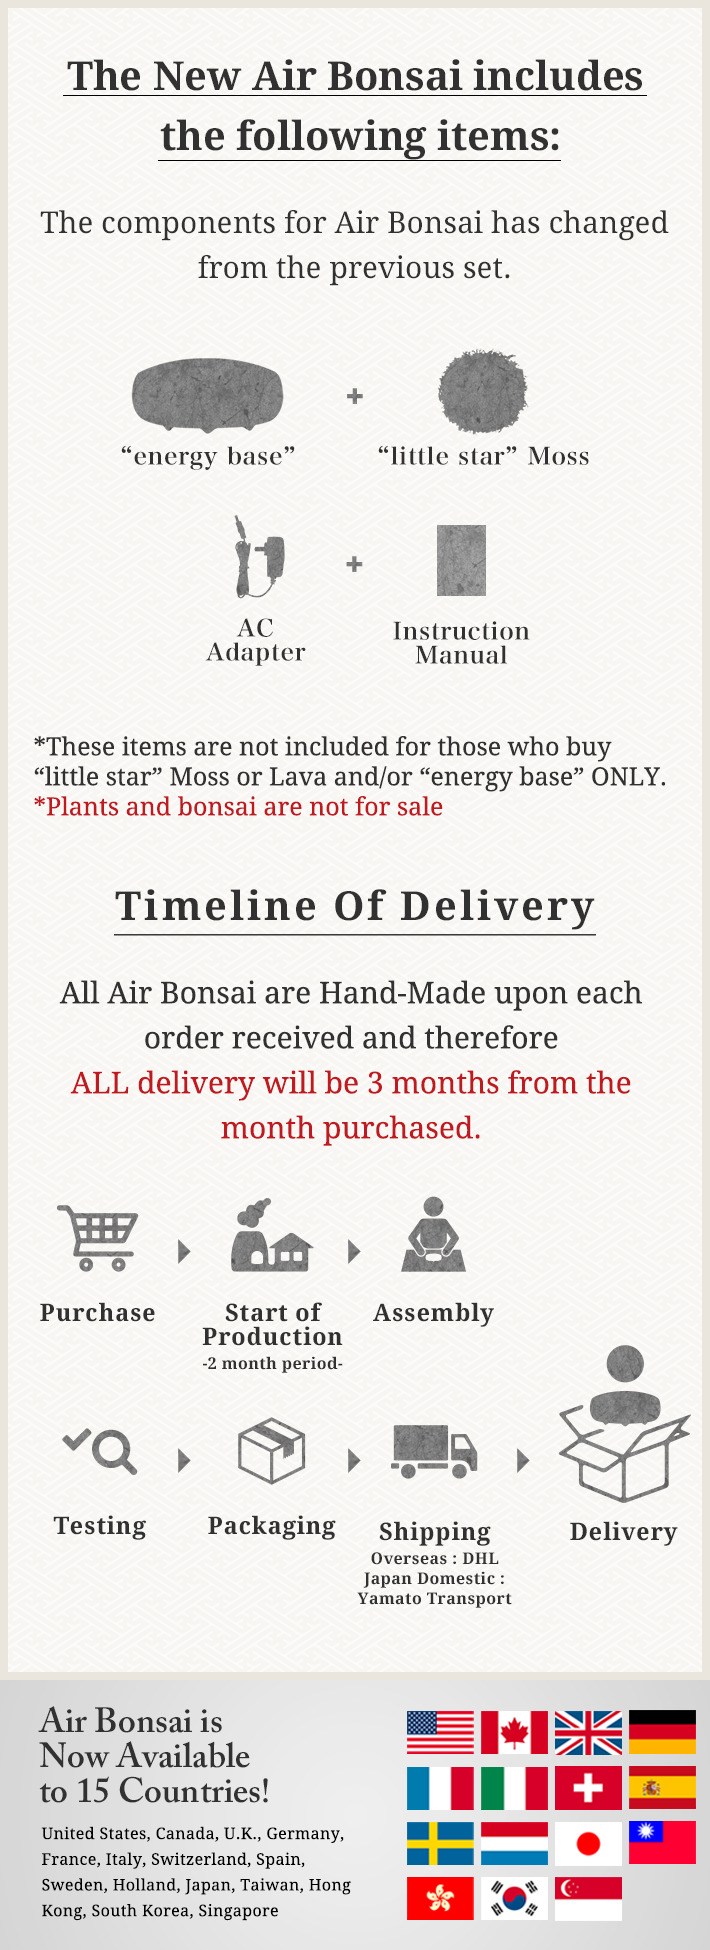 Timeline Of Delivery